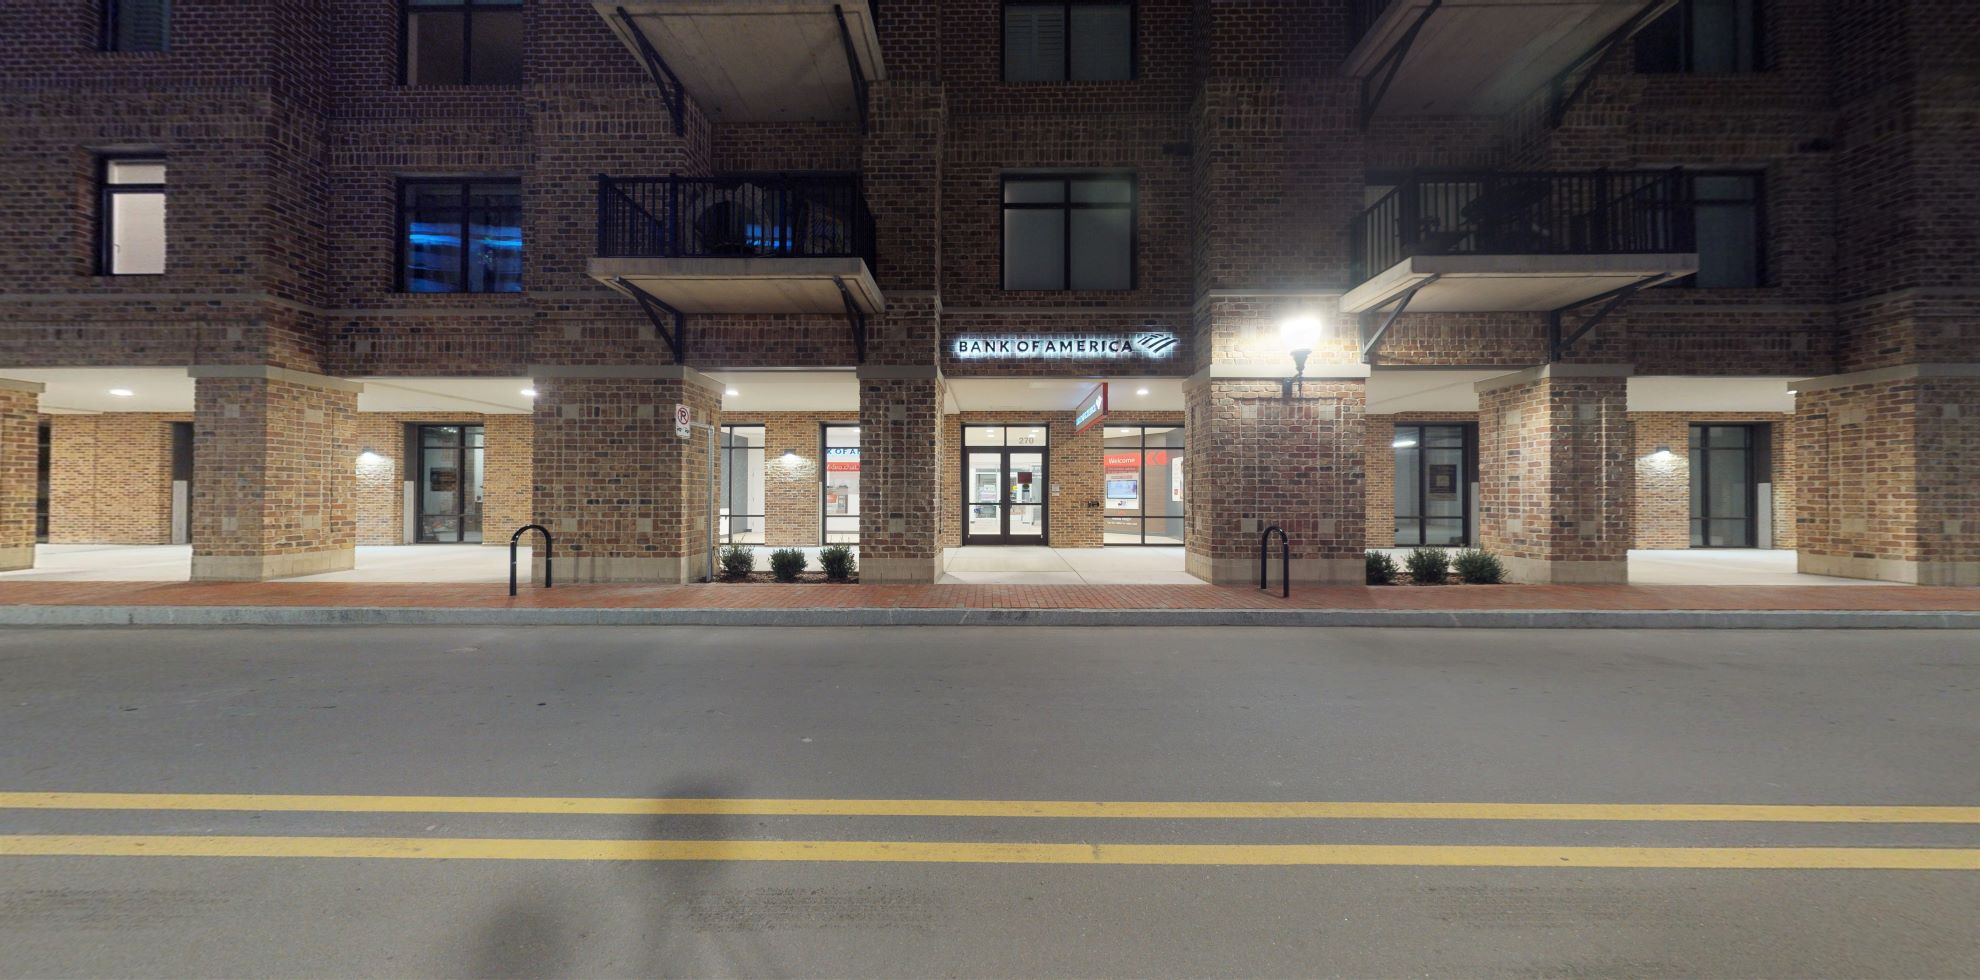 Bank of America Advanced Center with walk-up ATM   270 N Water St, Wilmington, NC 28401